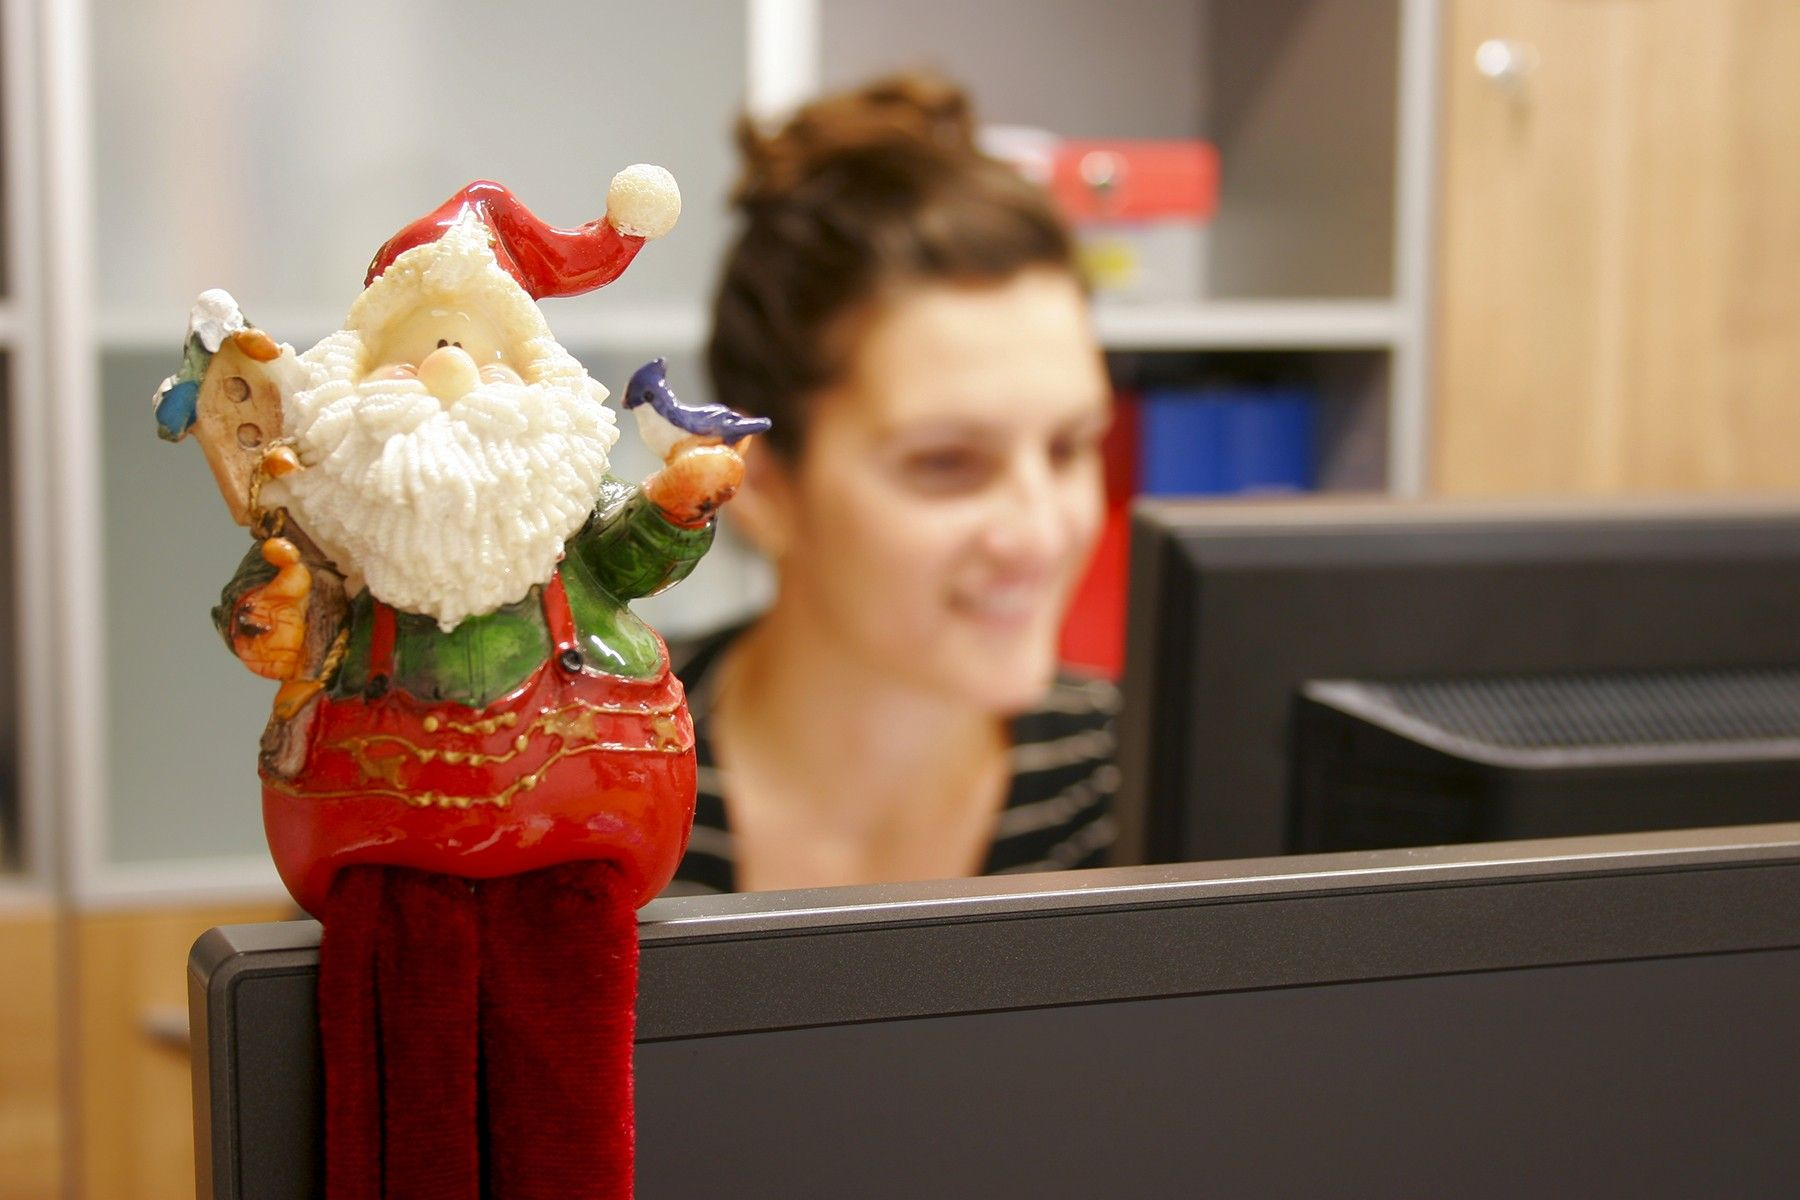 Spread some holiday cheer around your workplace this winter.